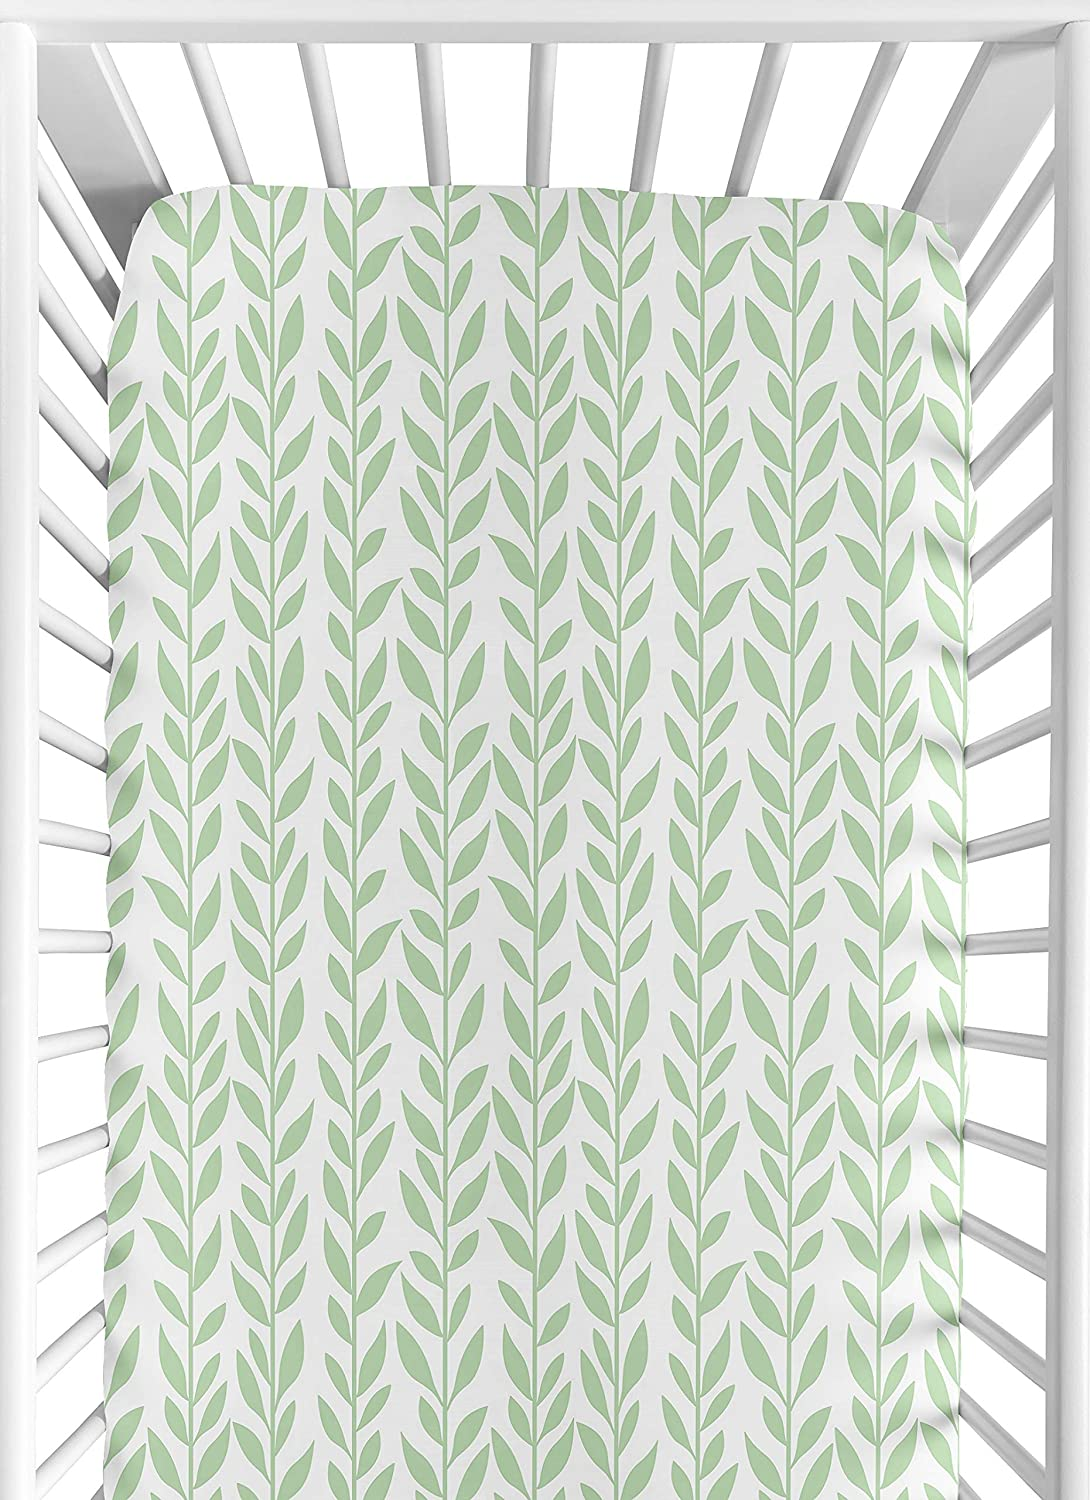 Sweet Jojo Designs Green and White Leaf Floral Girl Baby or Toddler Nursery Fitted Crib Sheet - Boho Farmhouse Sunflower Collection